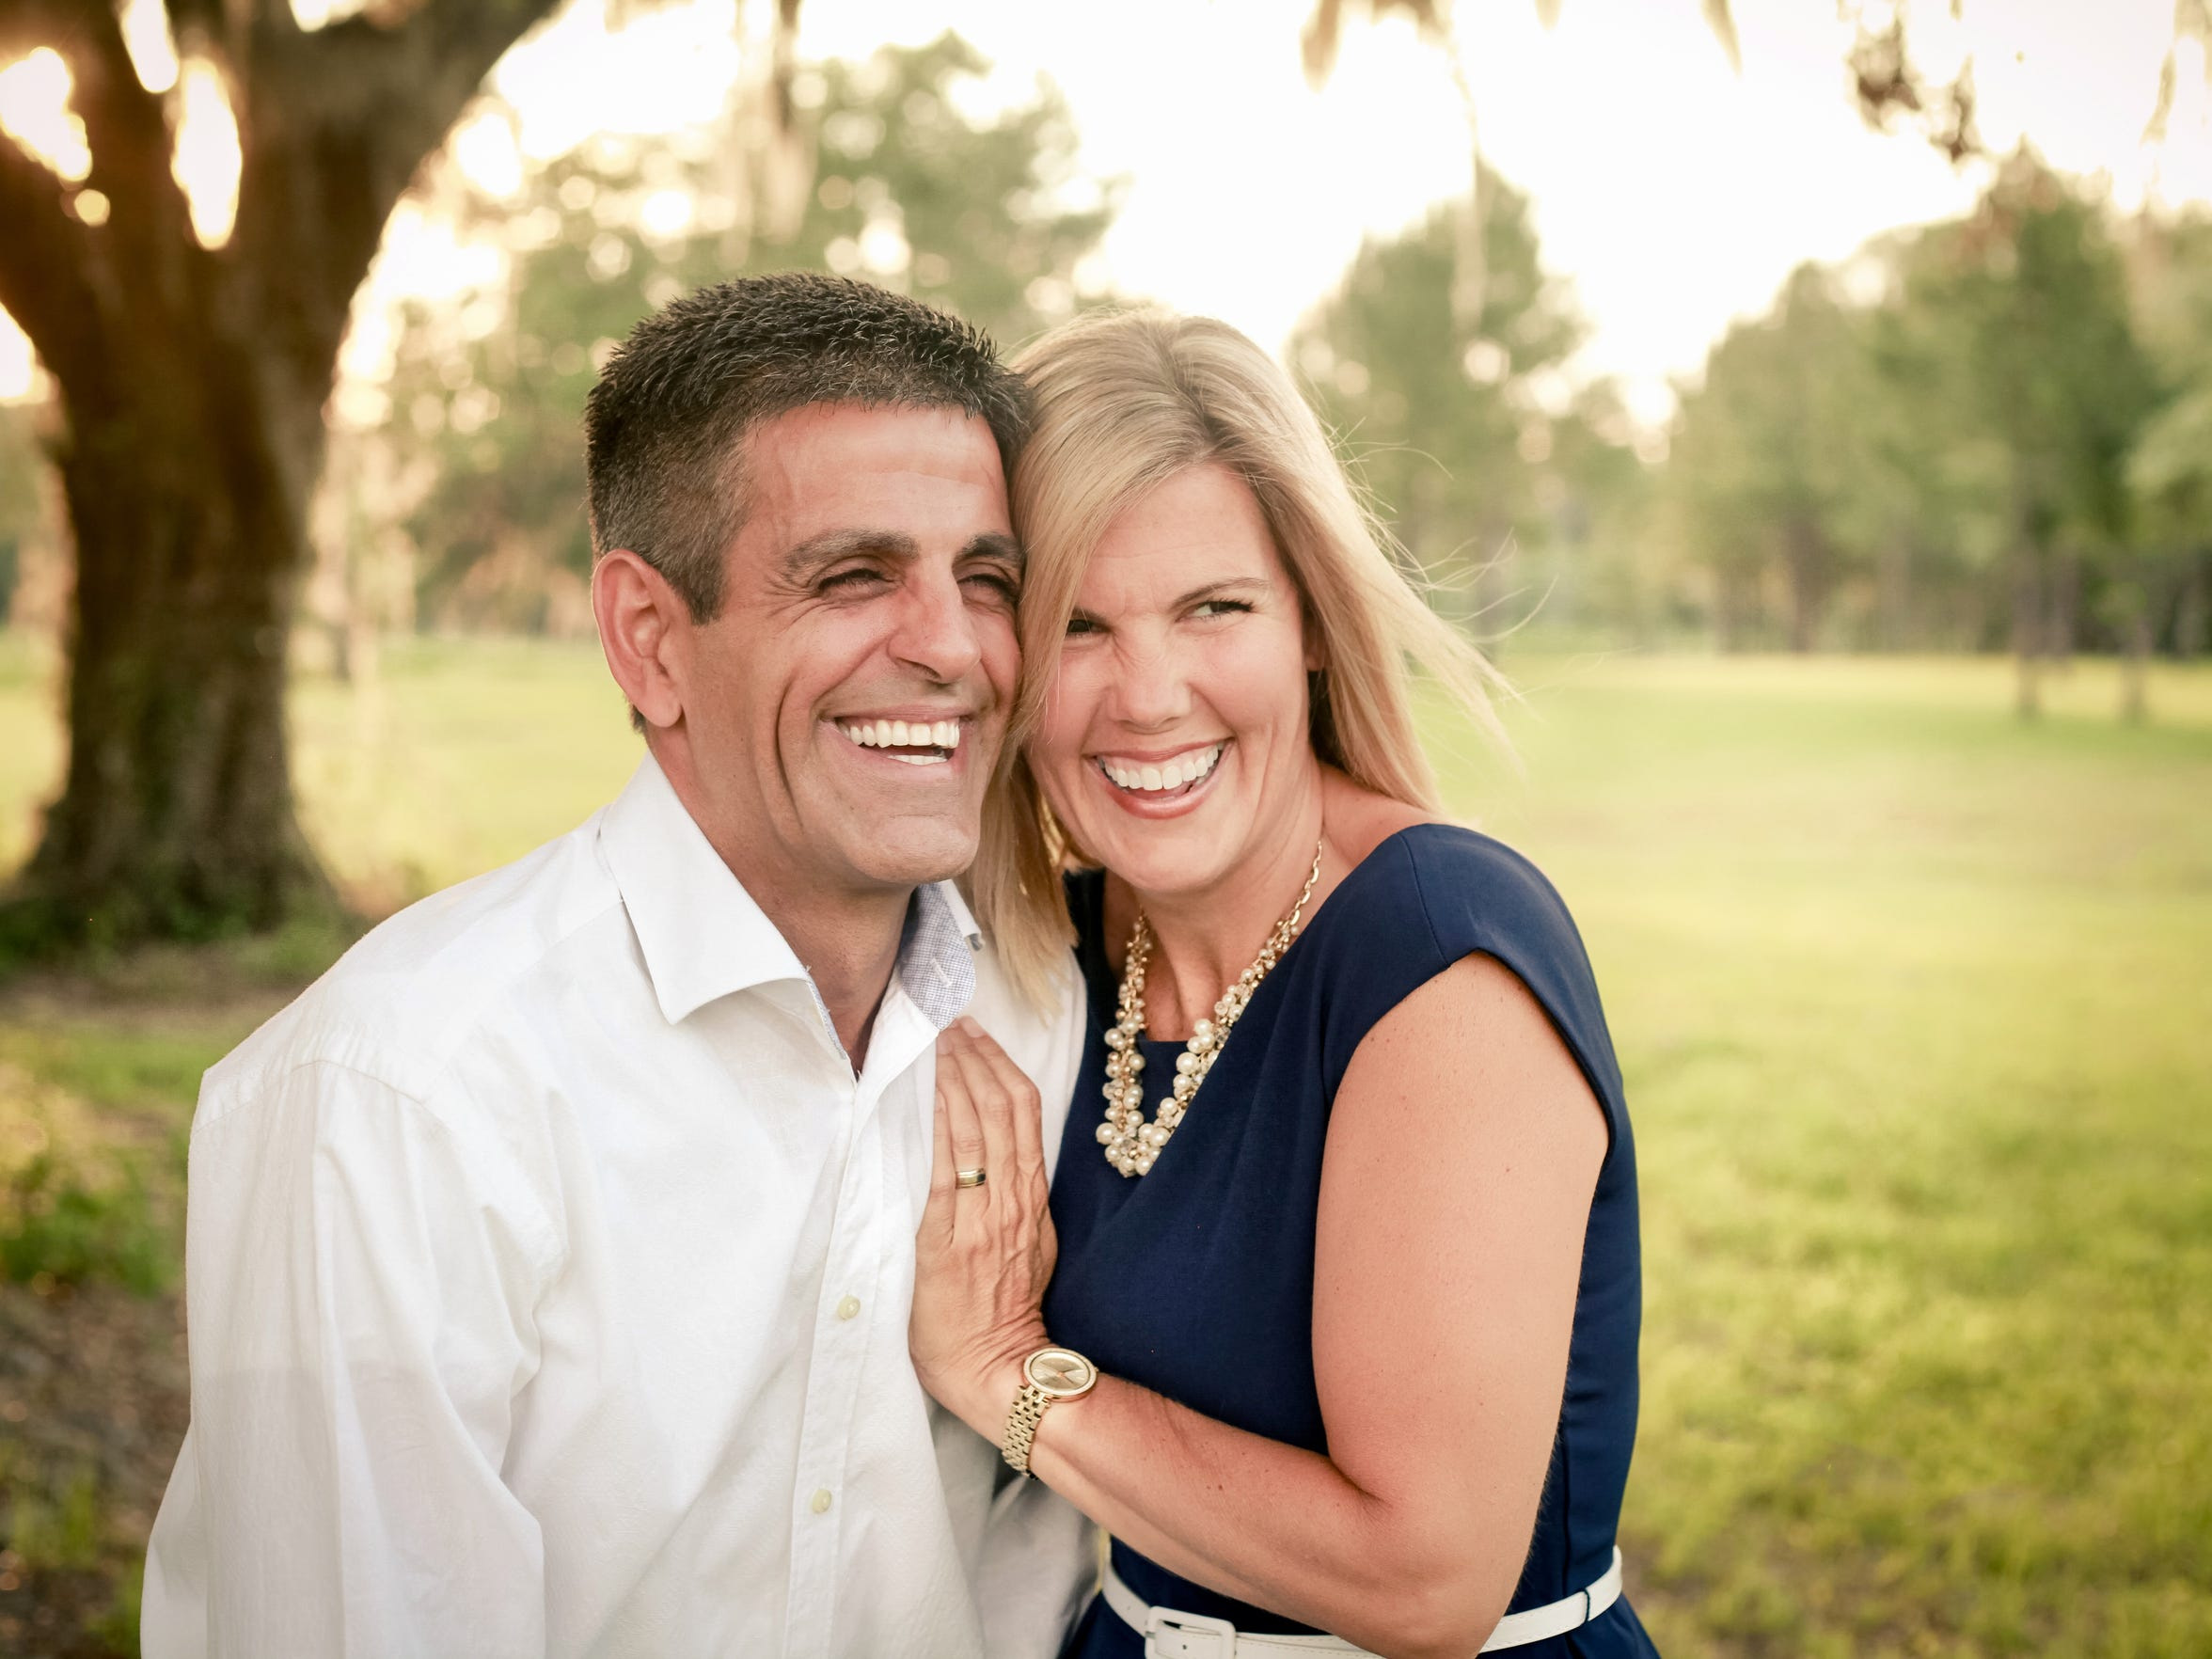 Rudy and Shelly Blanco pose during a family photo shoot before their son Noah's graduation from high school.